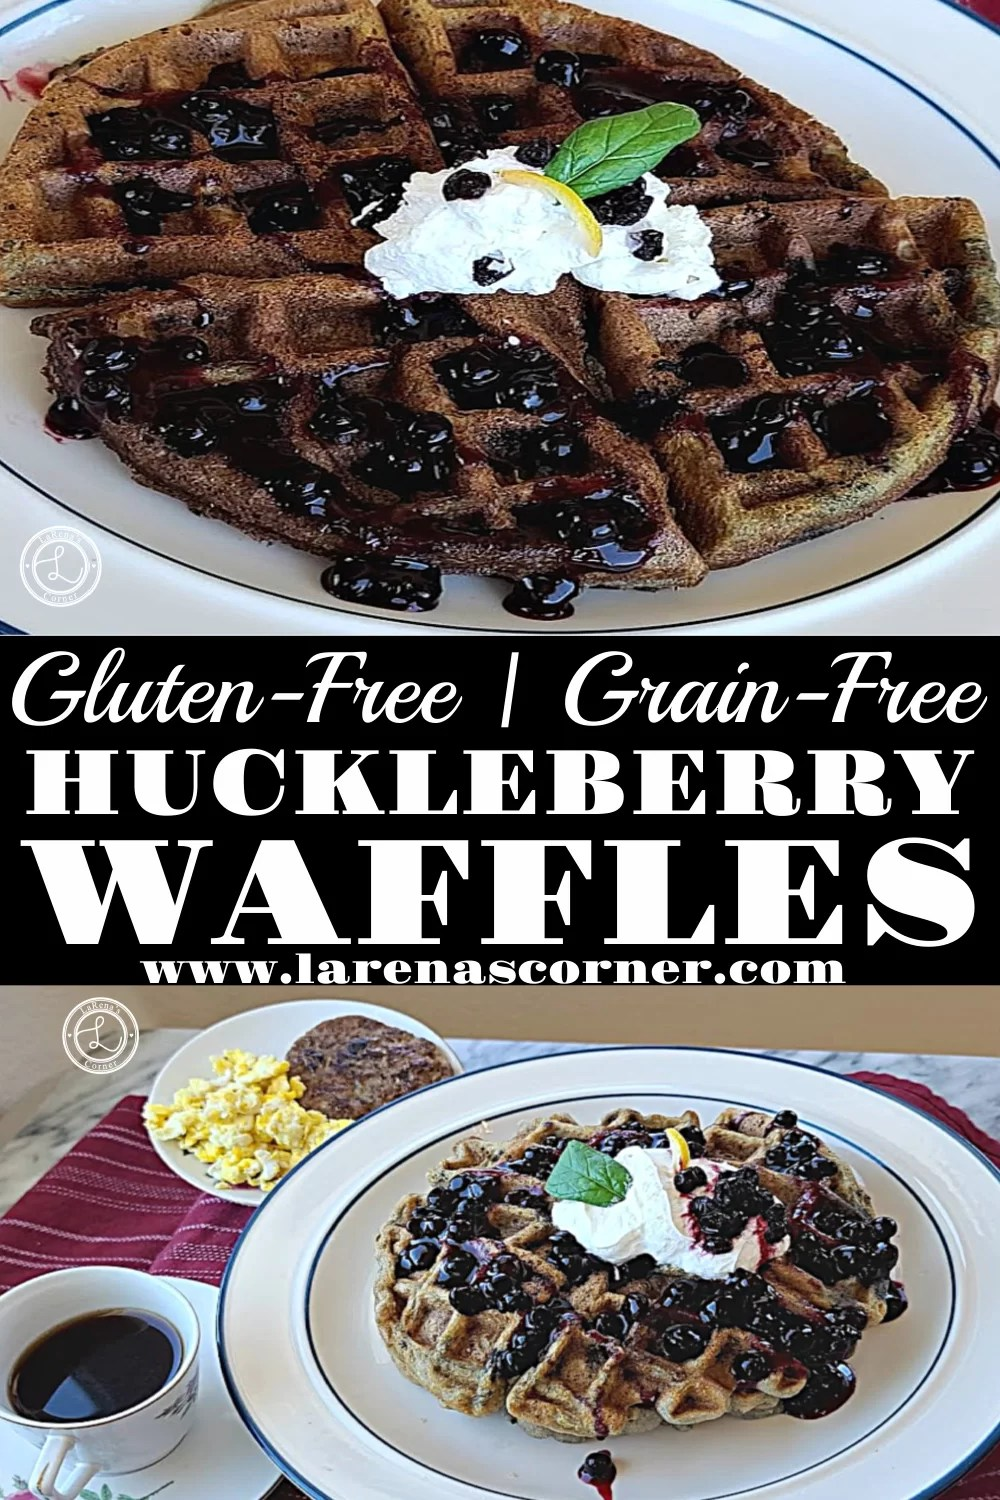 Gluten-Free Huckleberry Waffles: Two pictures one with sausage, eggs, and coffee, one close up of the waffle.